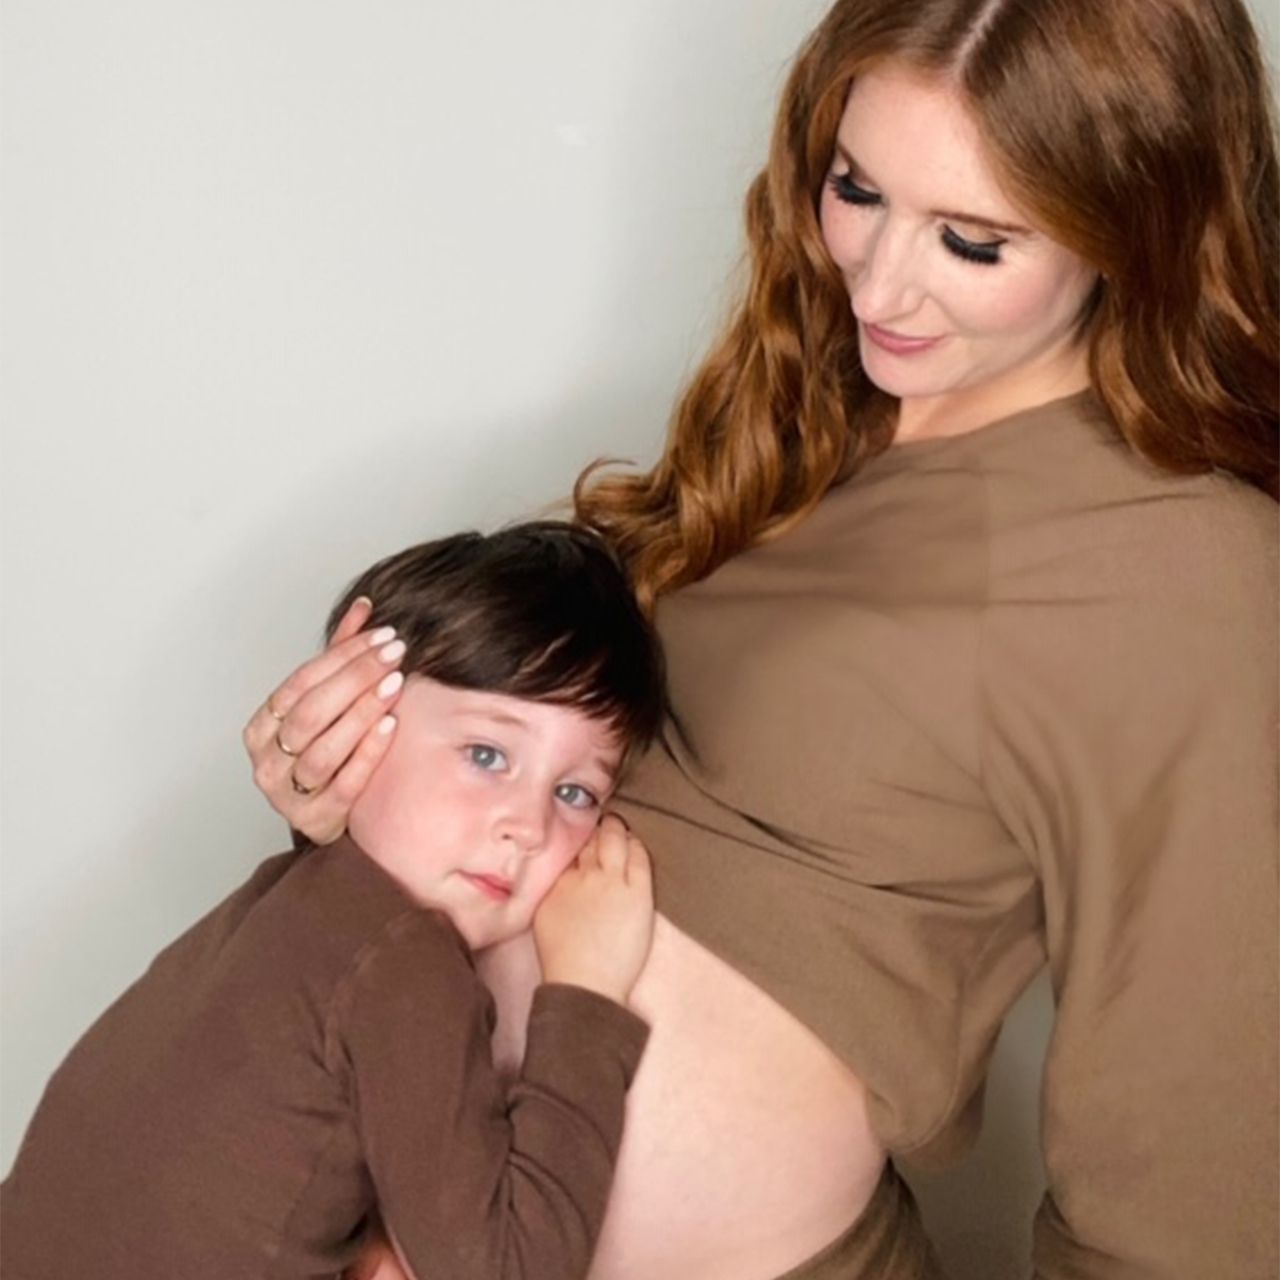 Photo of Jessi Cruickshank hugging one of her kids while they hug her pregnant belly